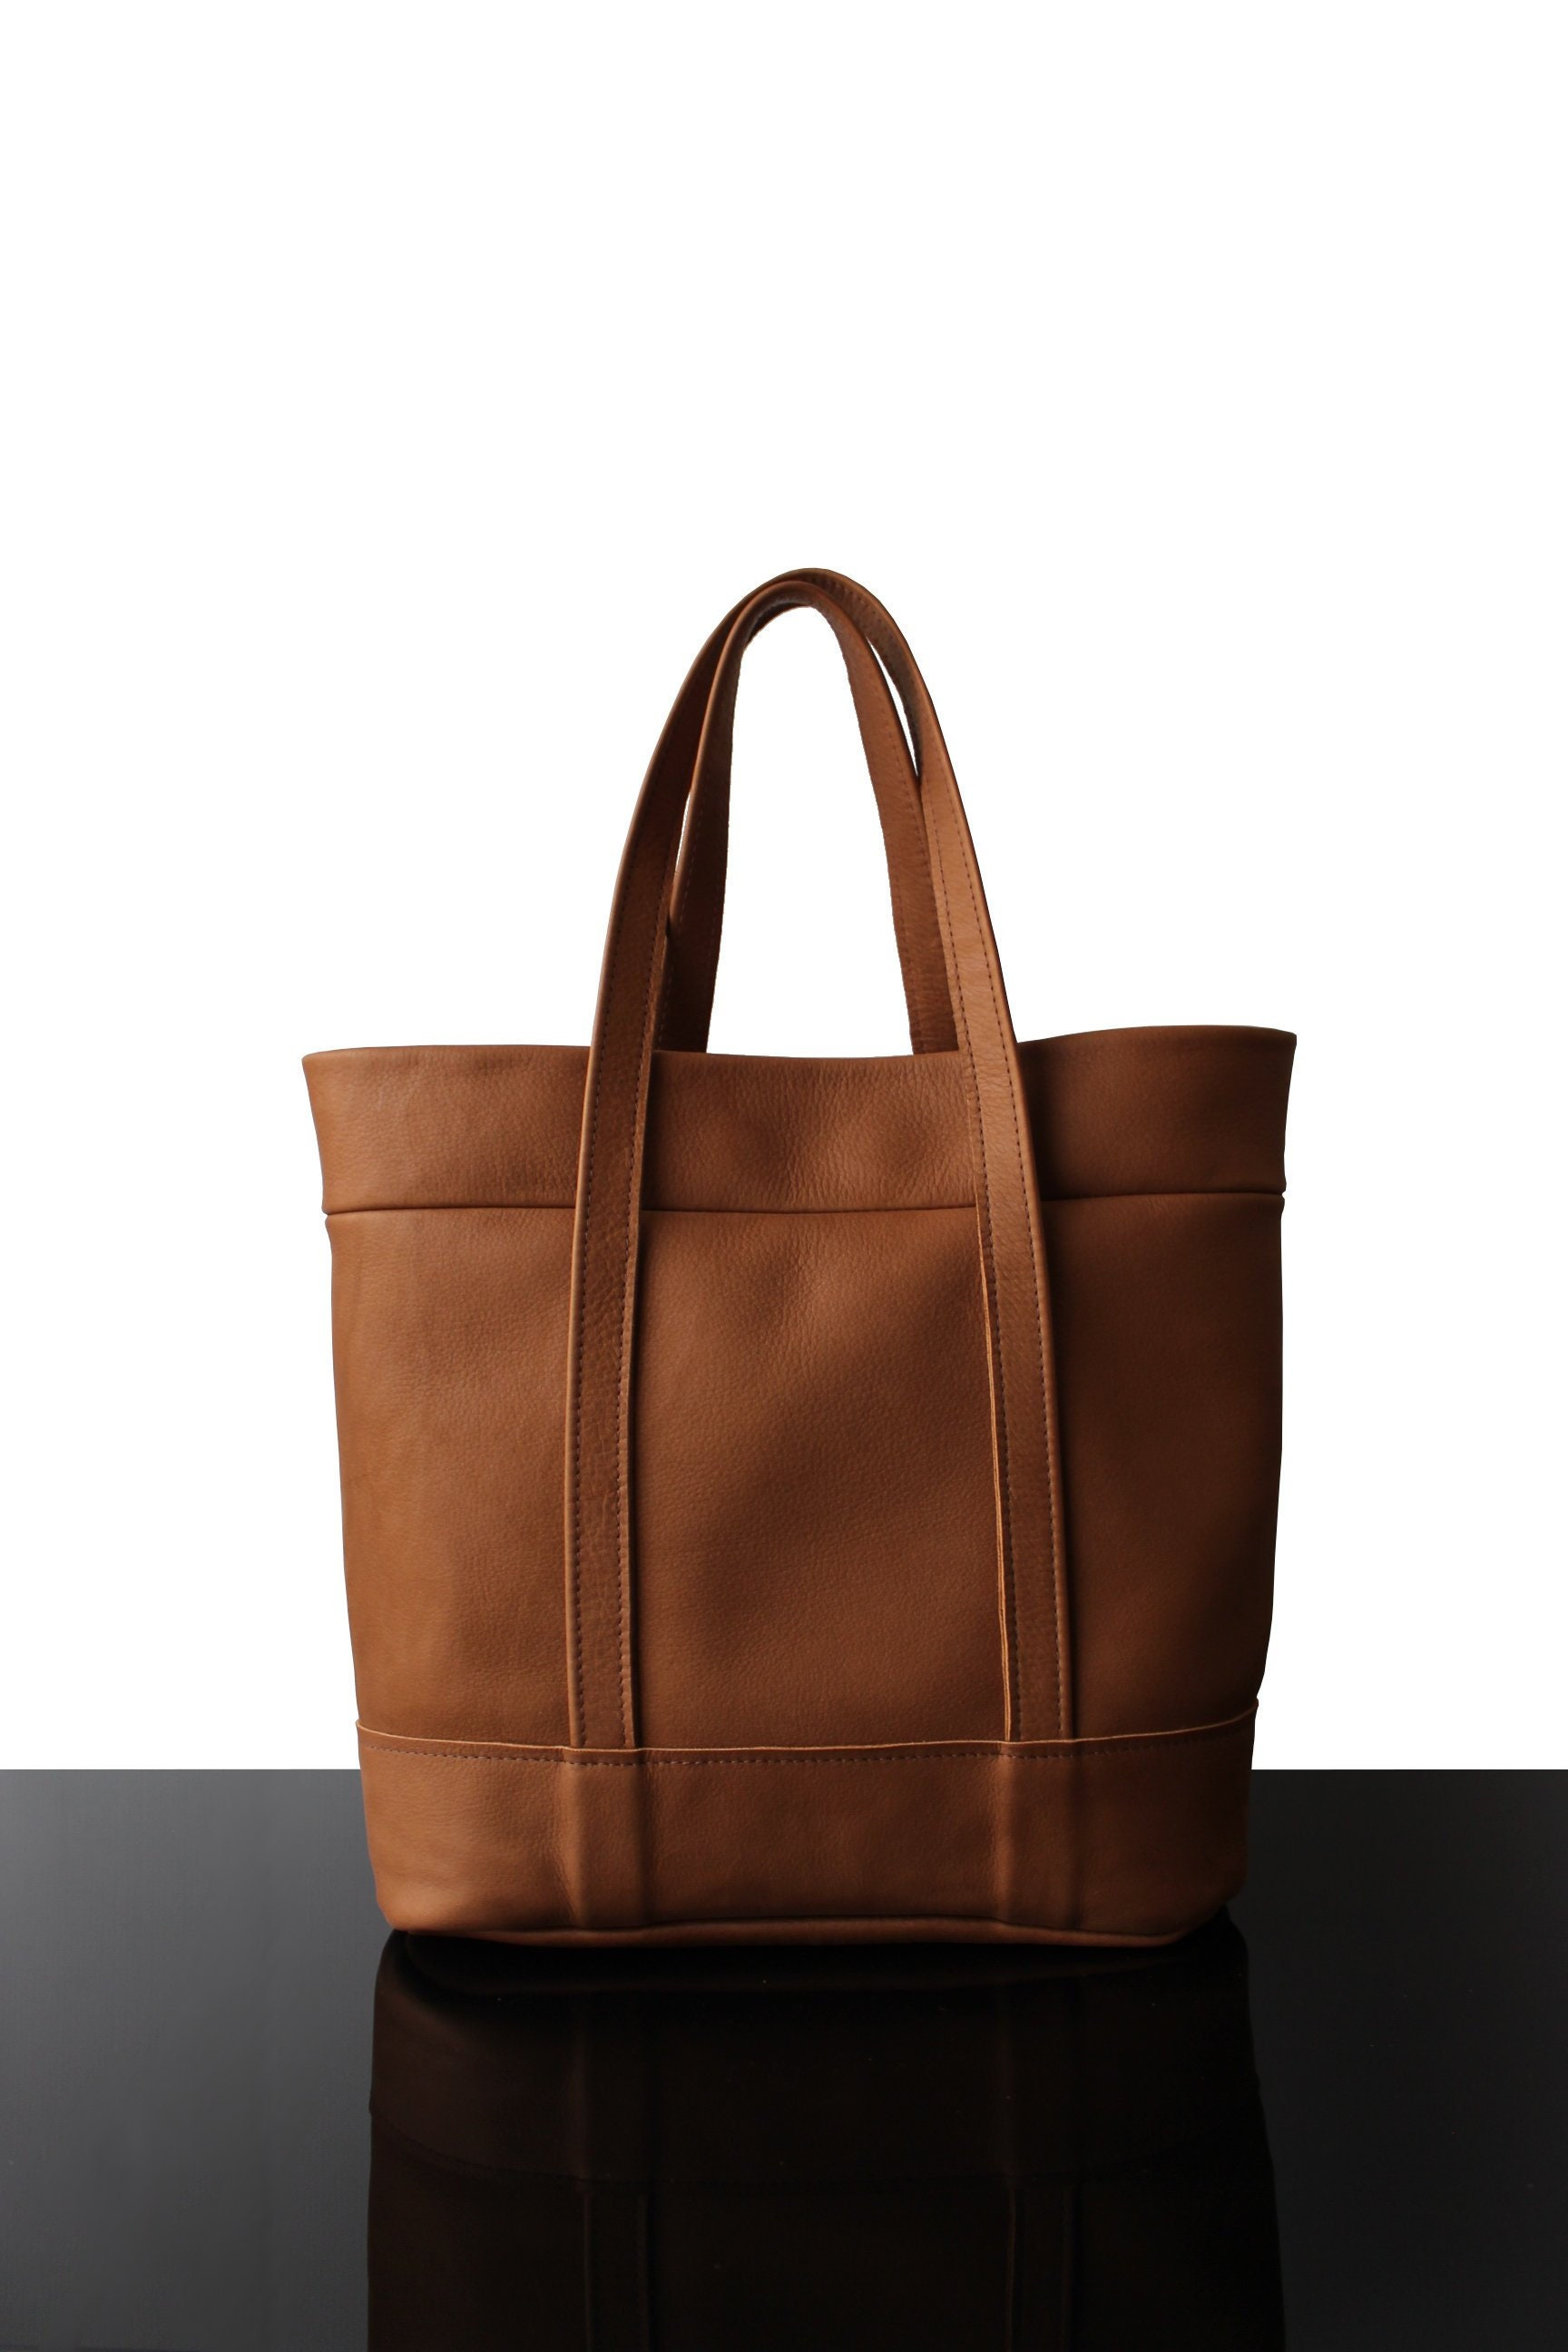 18b52a8af3cba Shopper leather bag tote bag leather Tote bag made in France